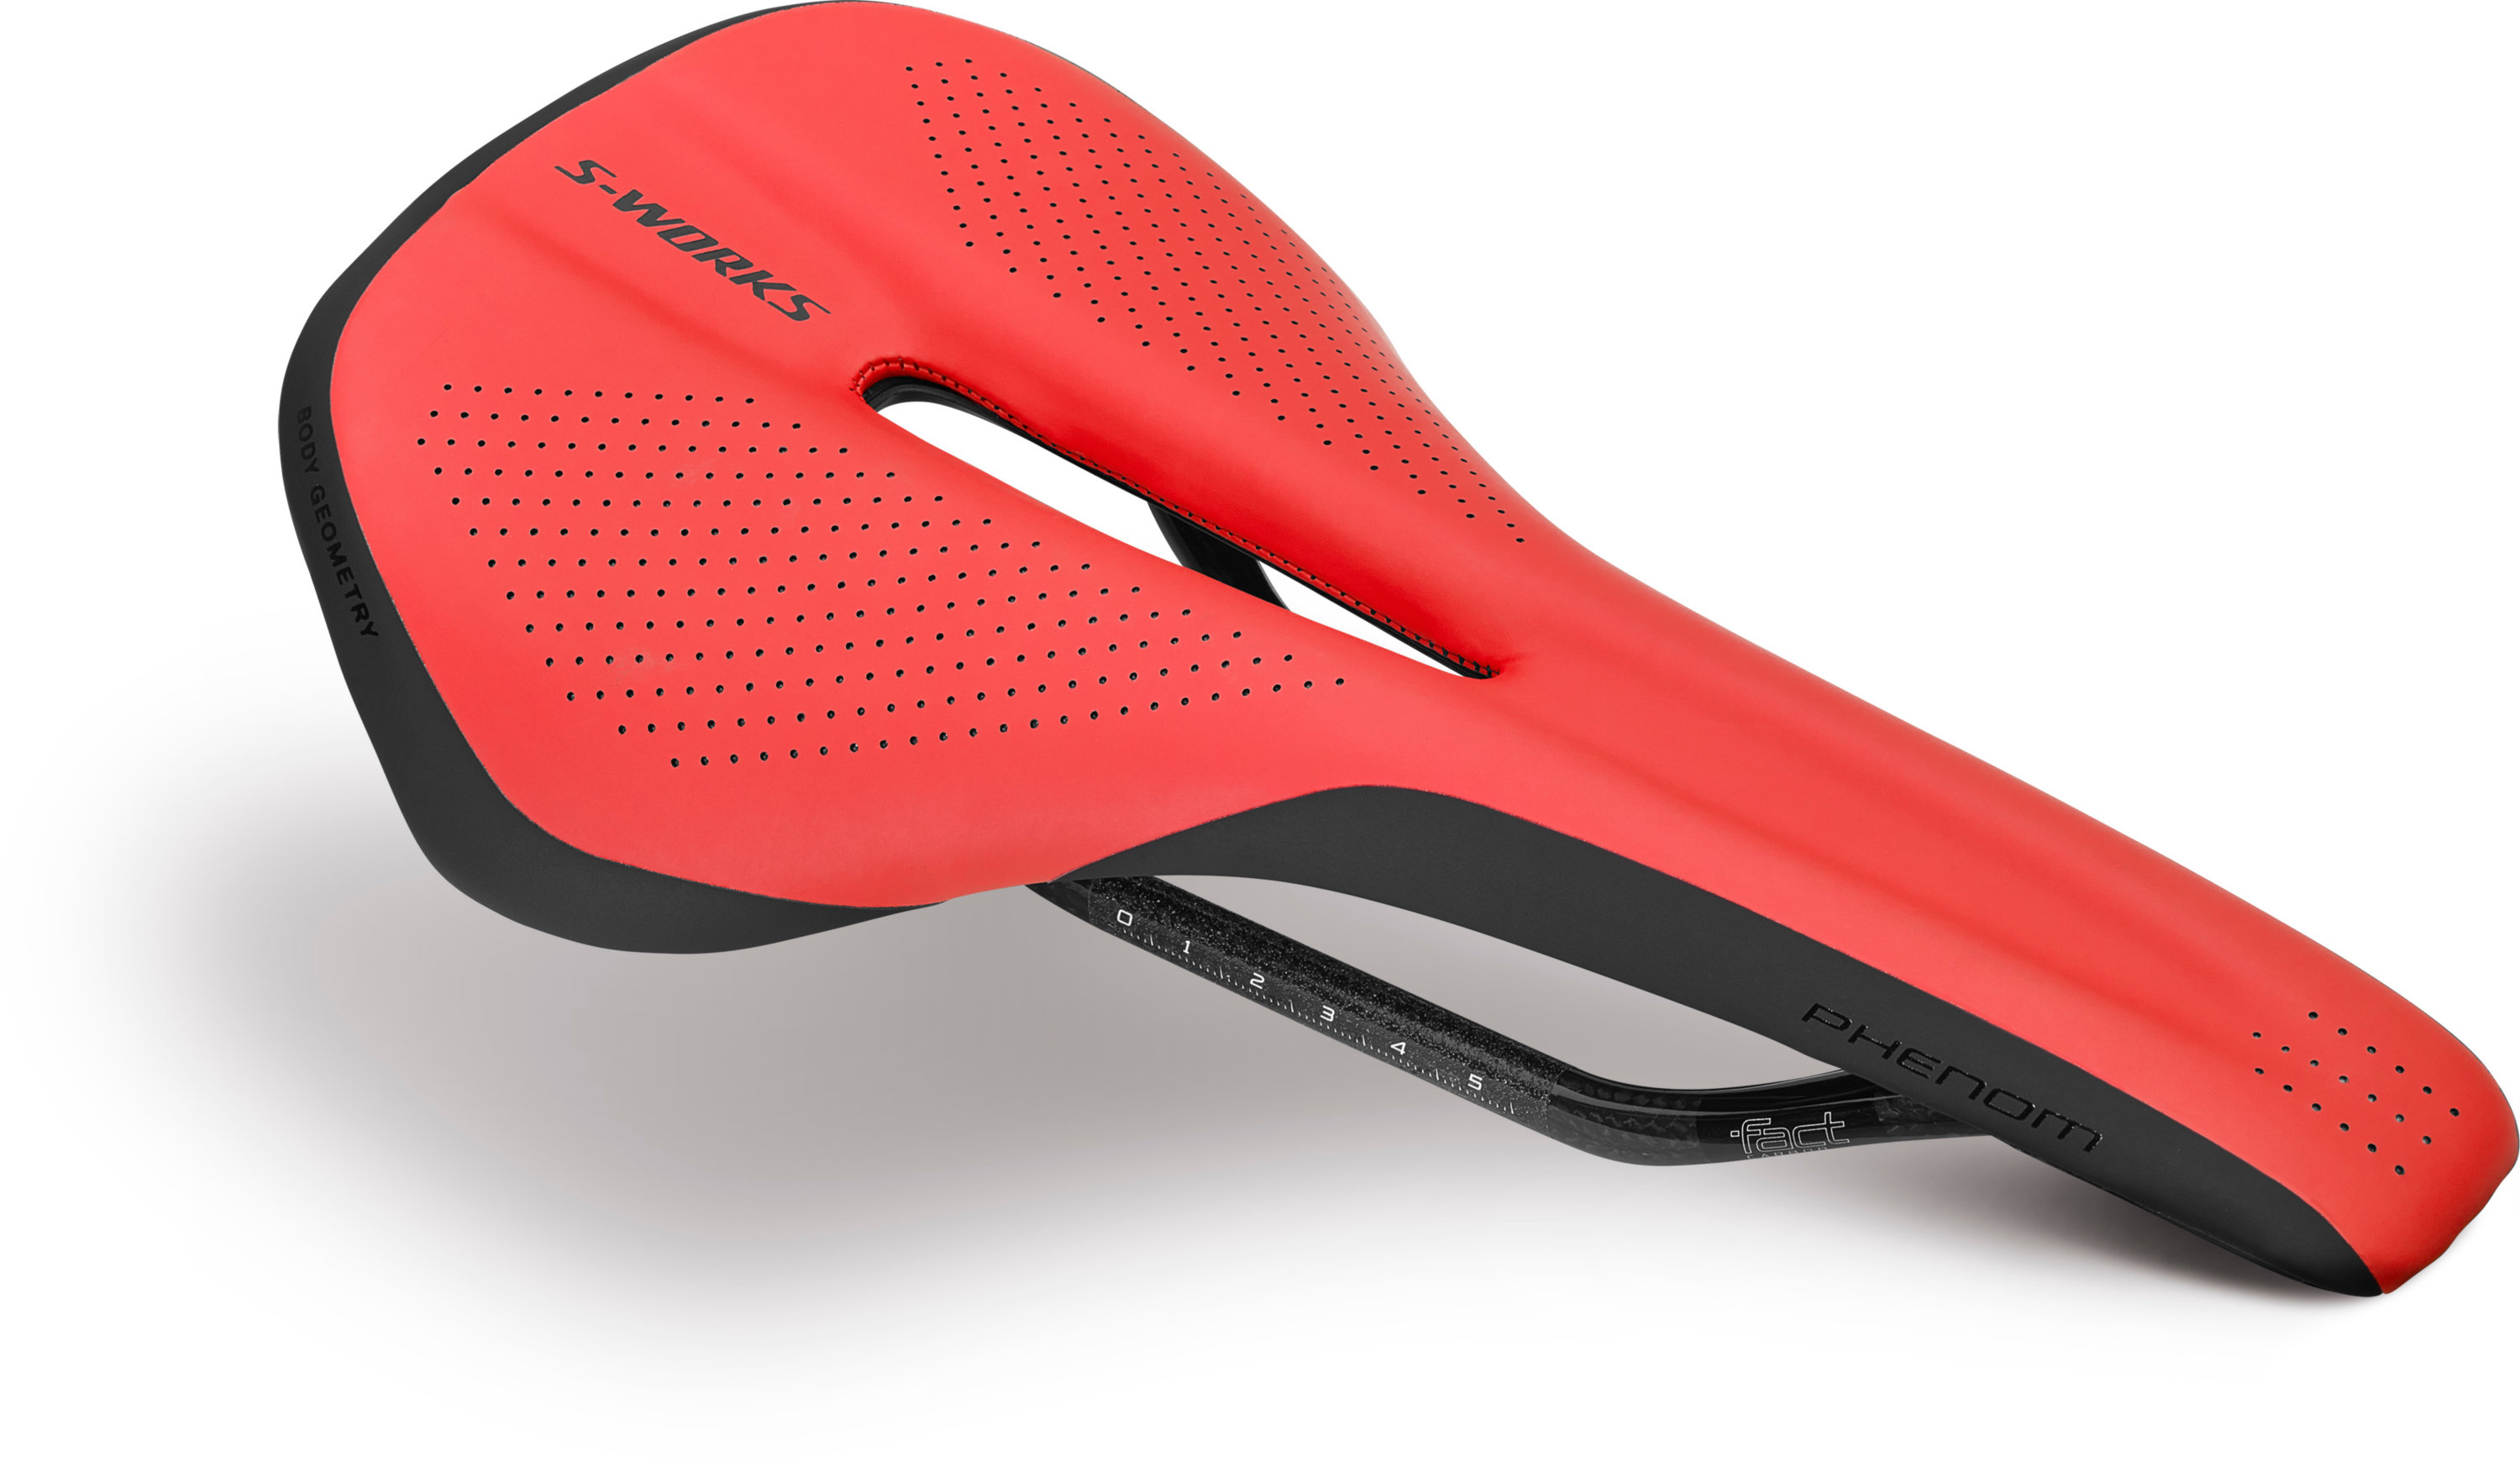 SPECIALIZED SW PHENOM CARBON SADDLE RED TEAM 155 - SPECIALIZED SW PHENOM CARBON SADDLE RED TEAM 155